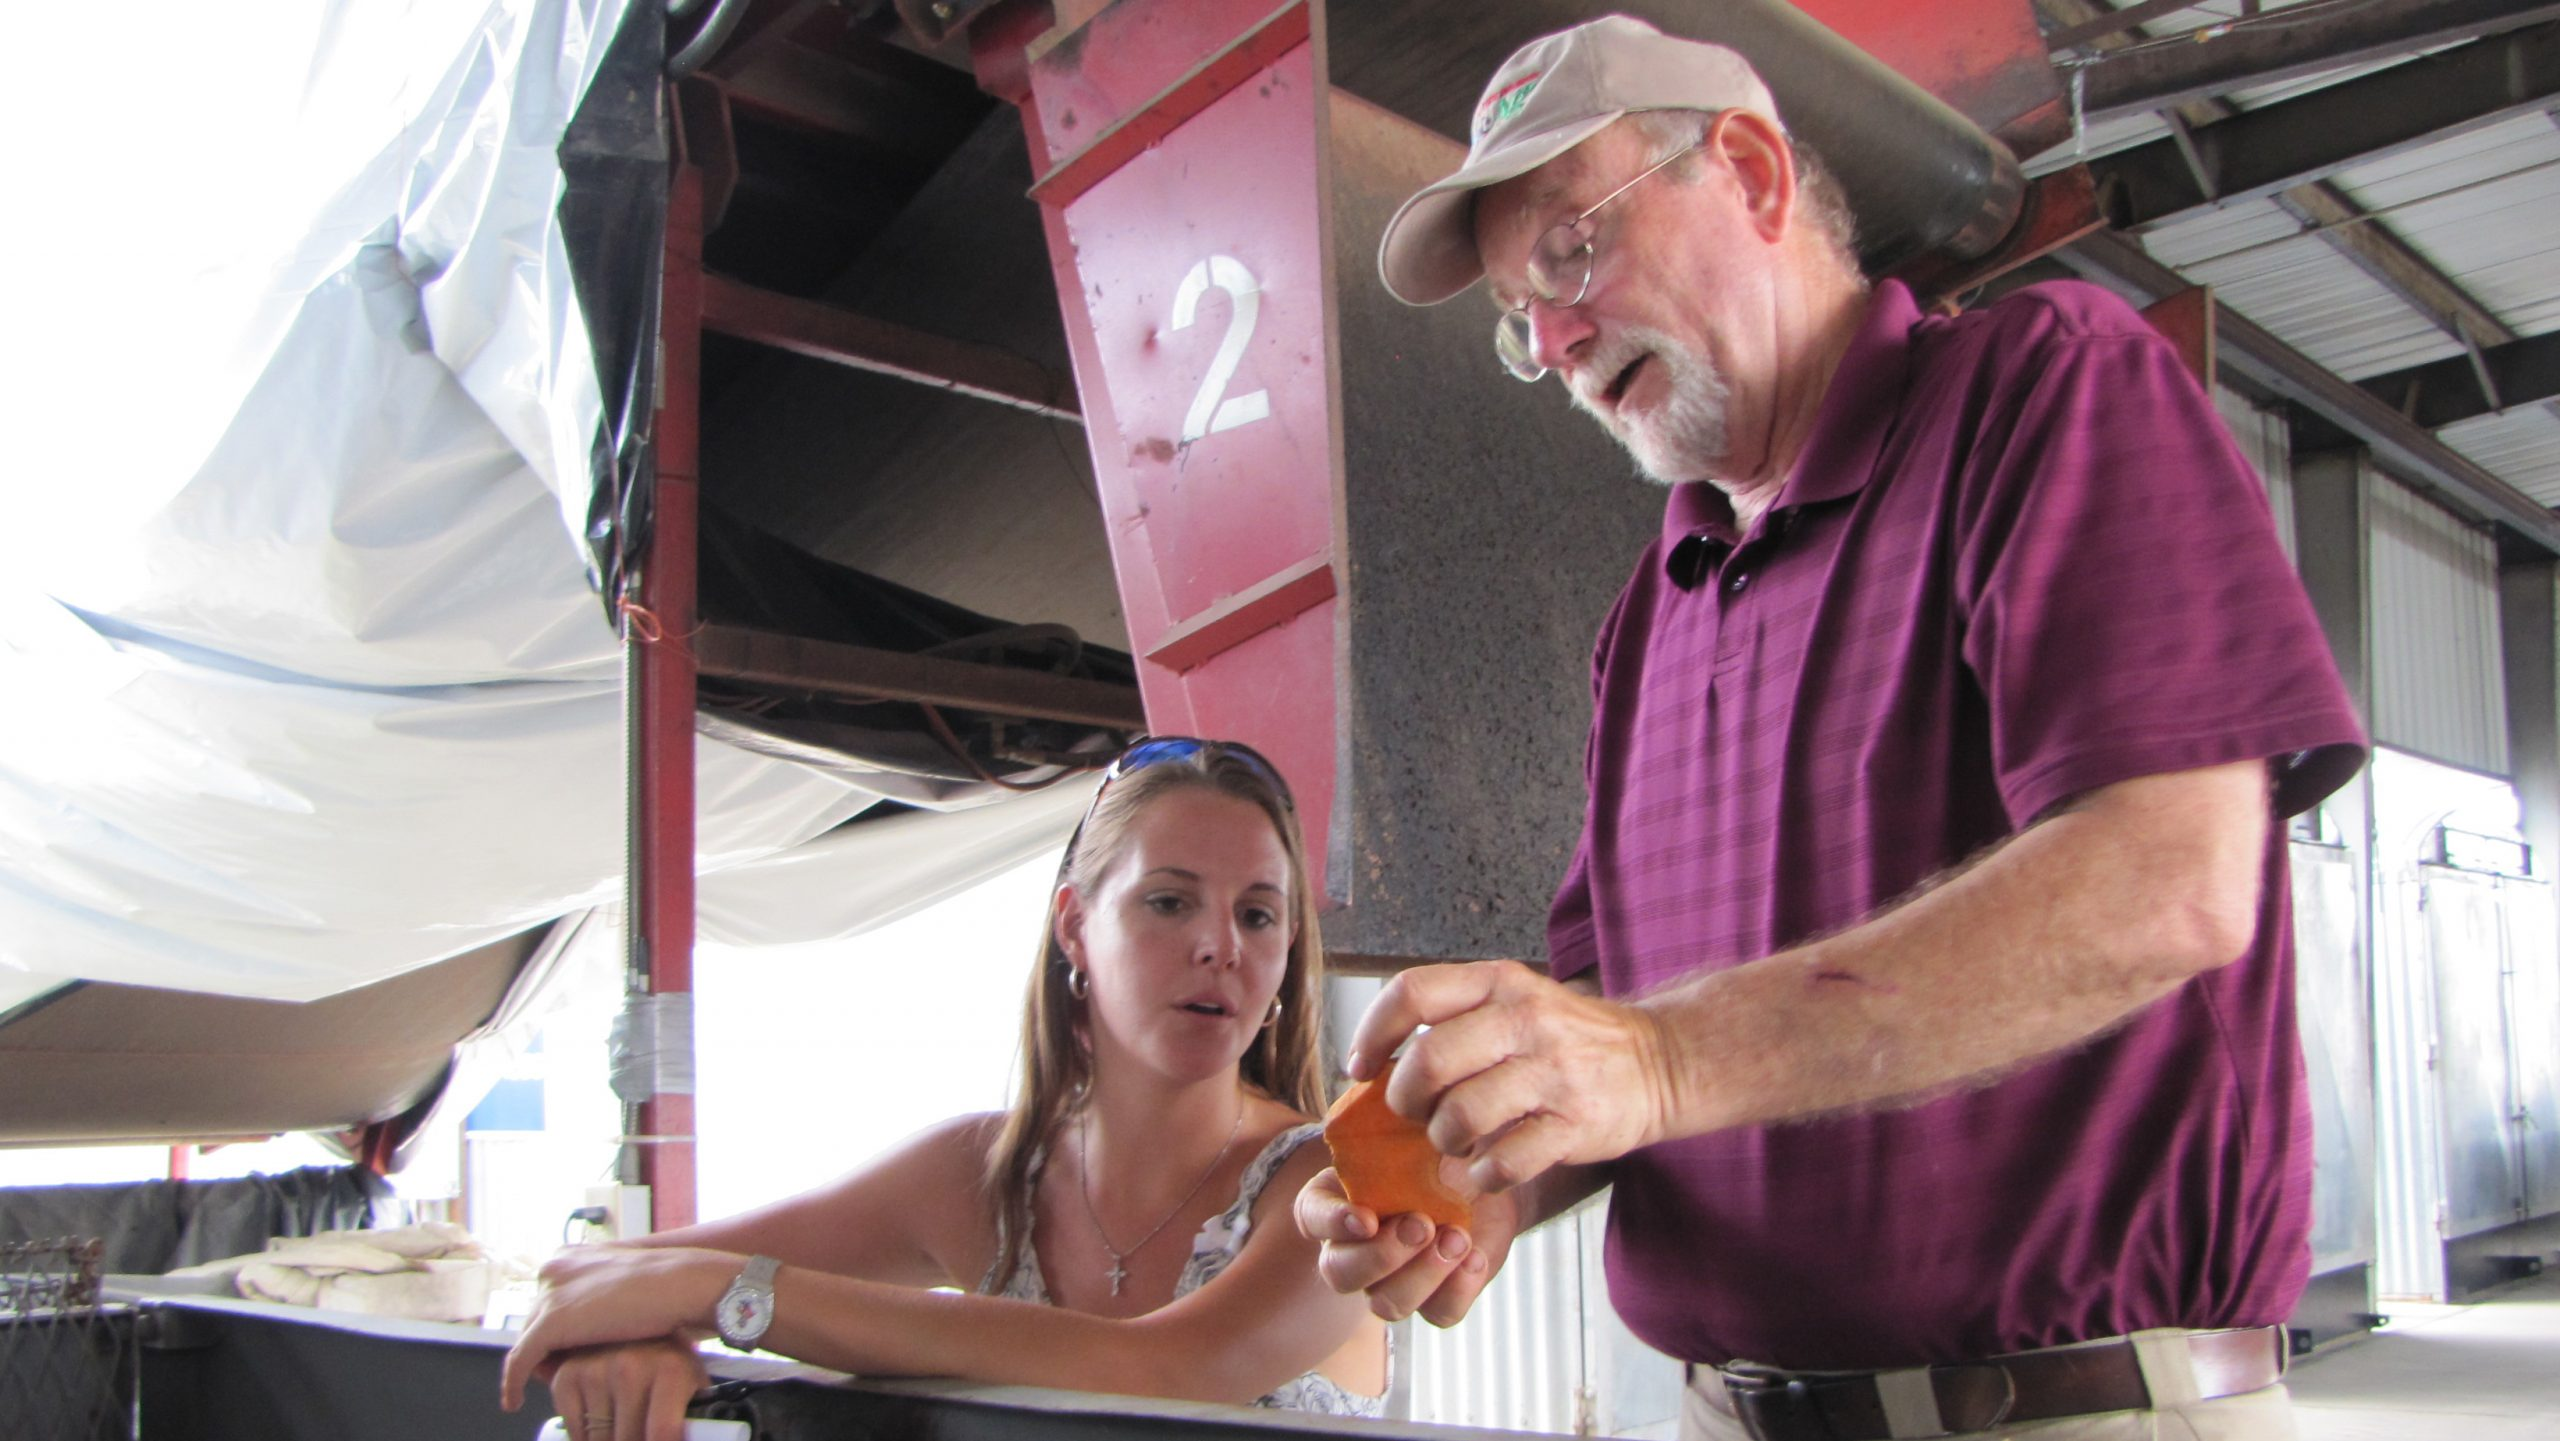 With woman looking on, man examines a peeled sweet potato